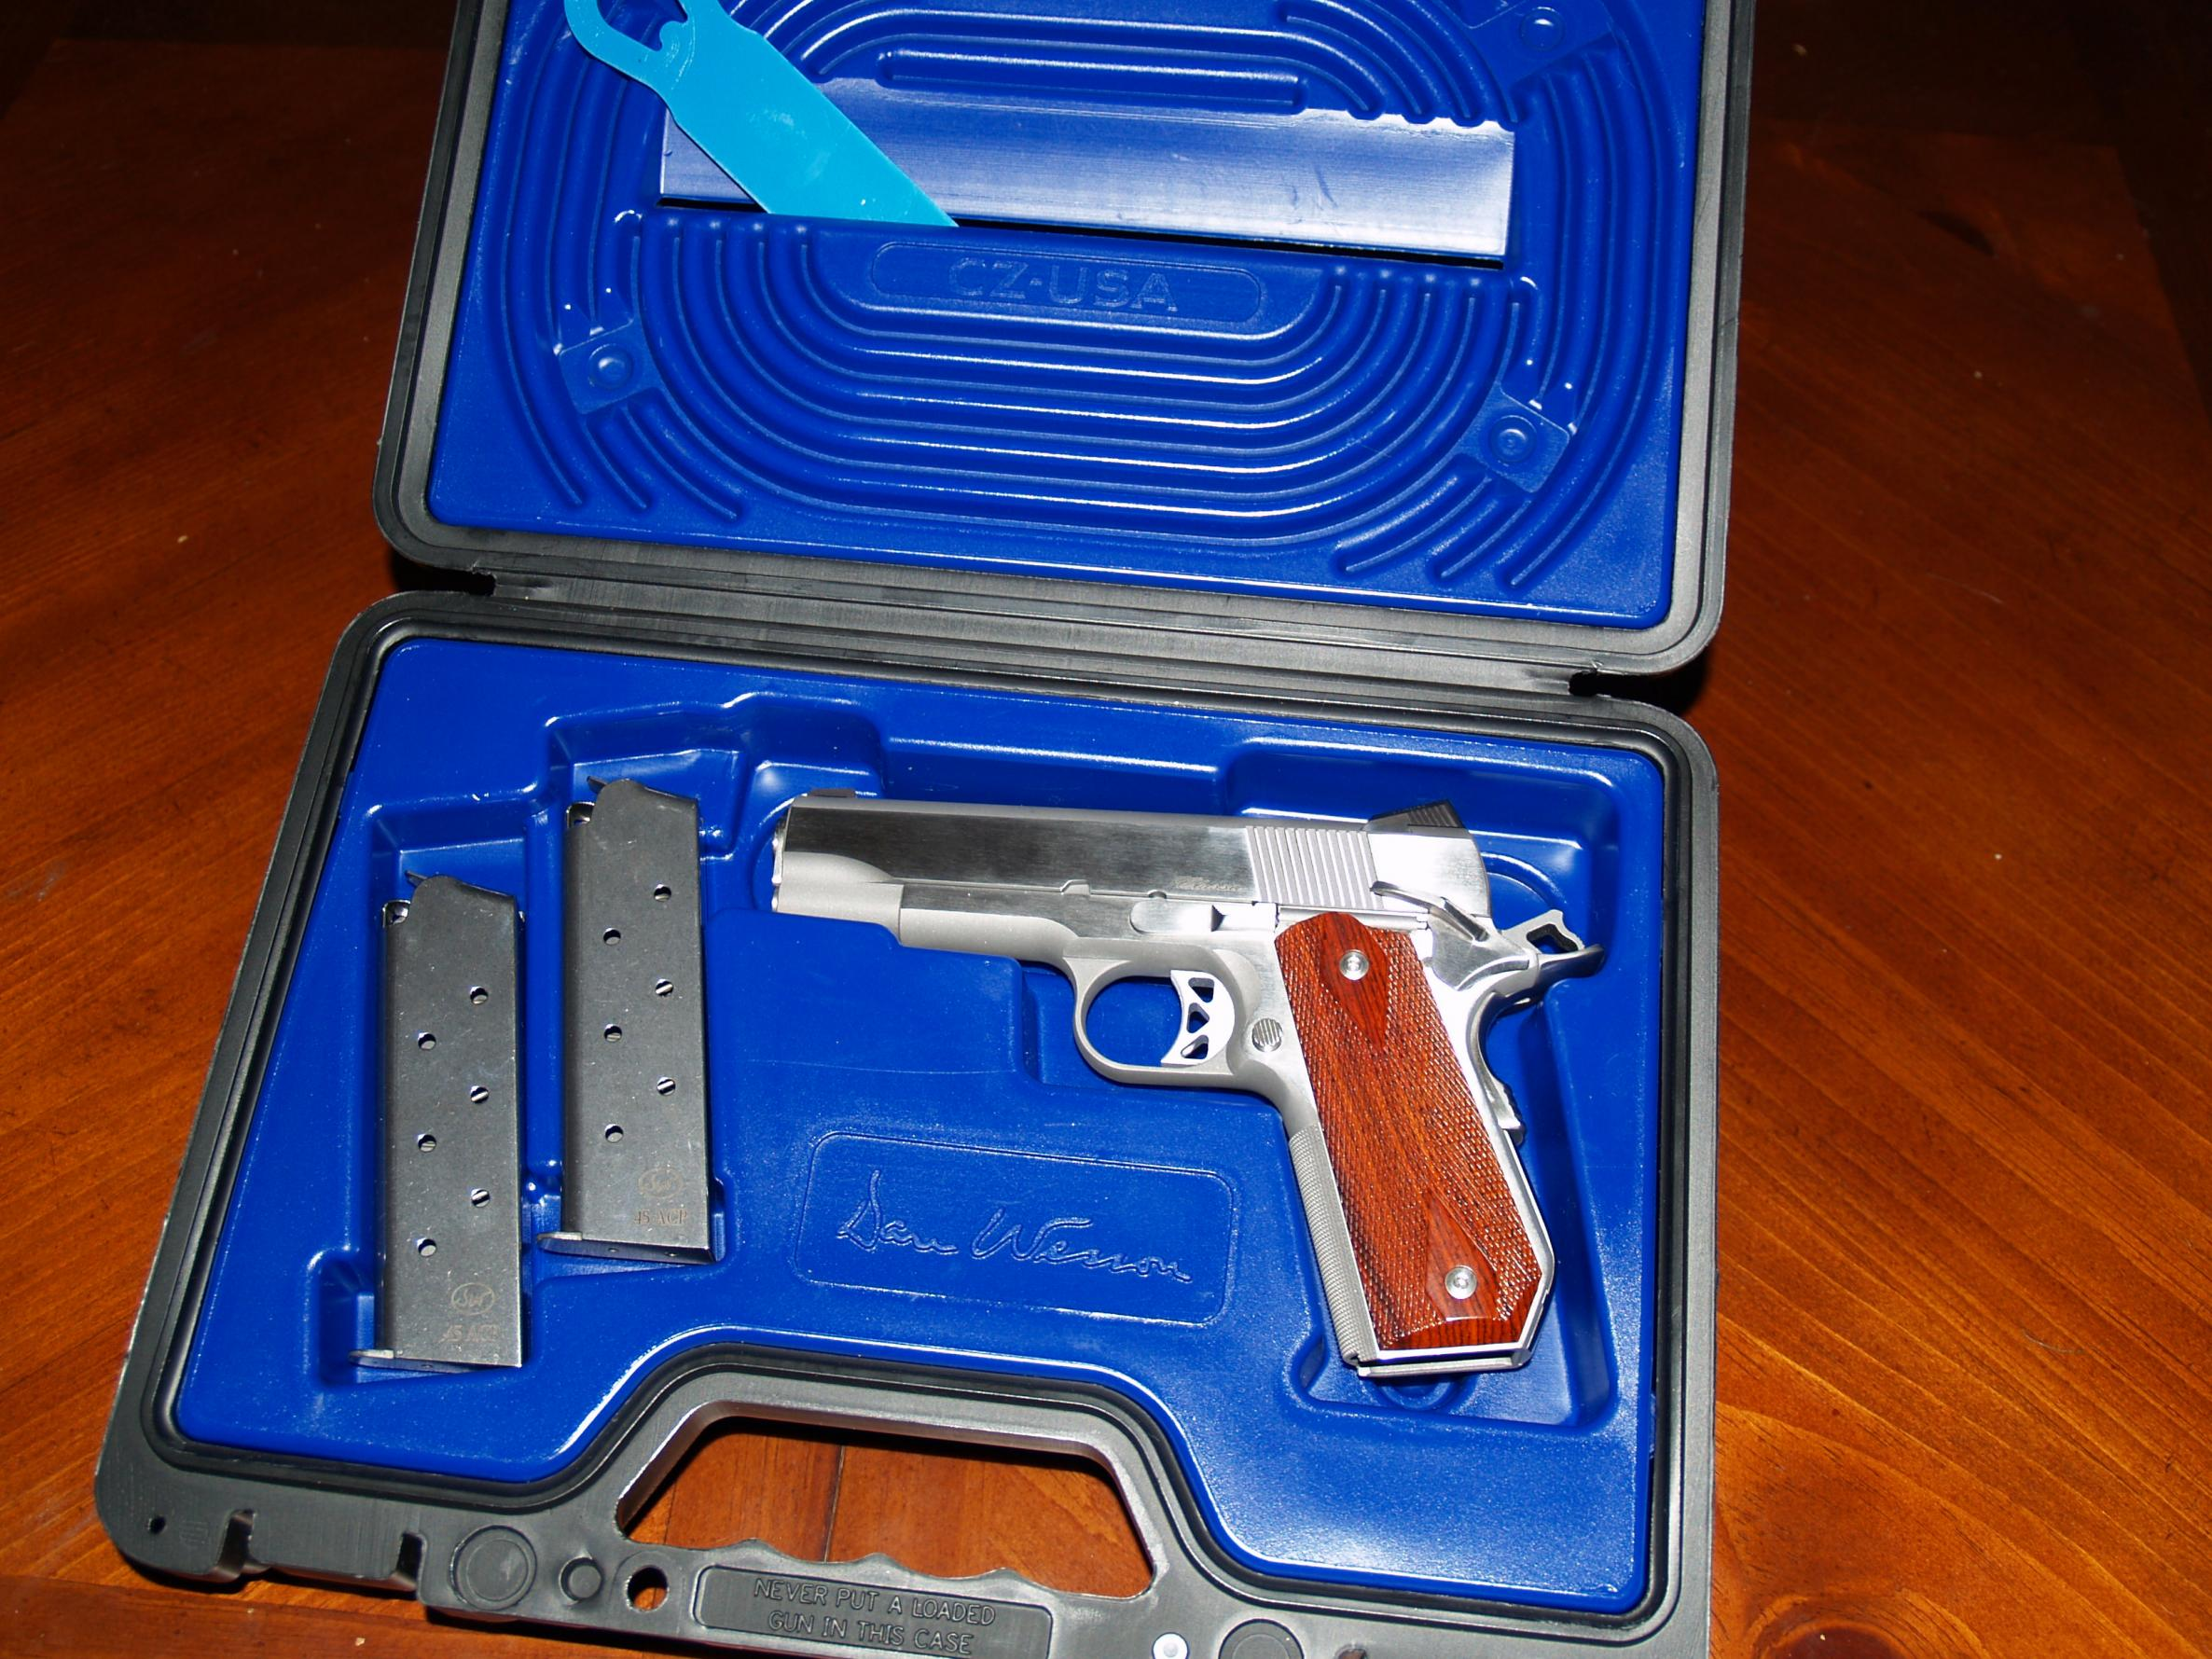 Lets See Your Current Favorite Gun (That You Own)-007.jpg